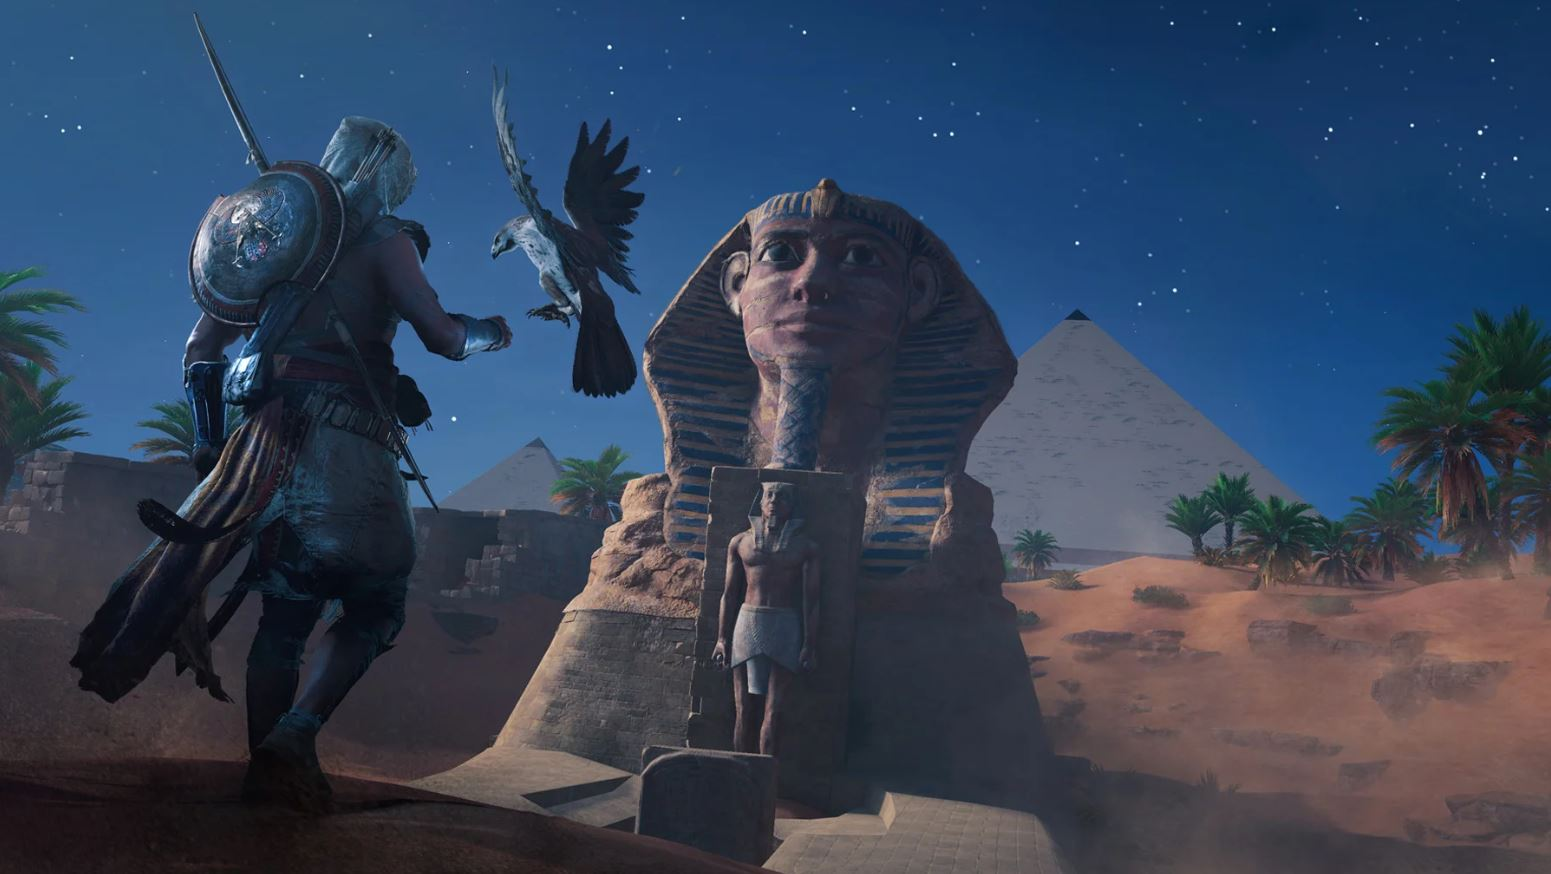 Great landscapes and exploration in Assassin's Creed Origins